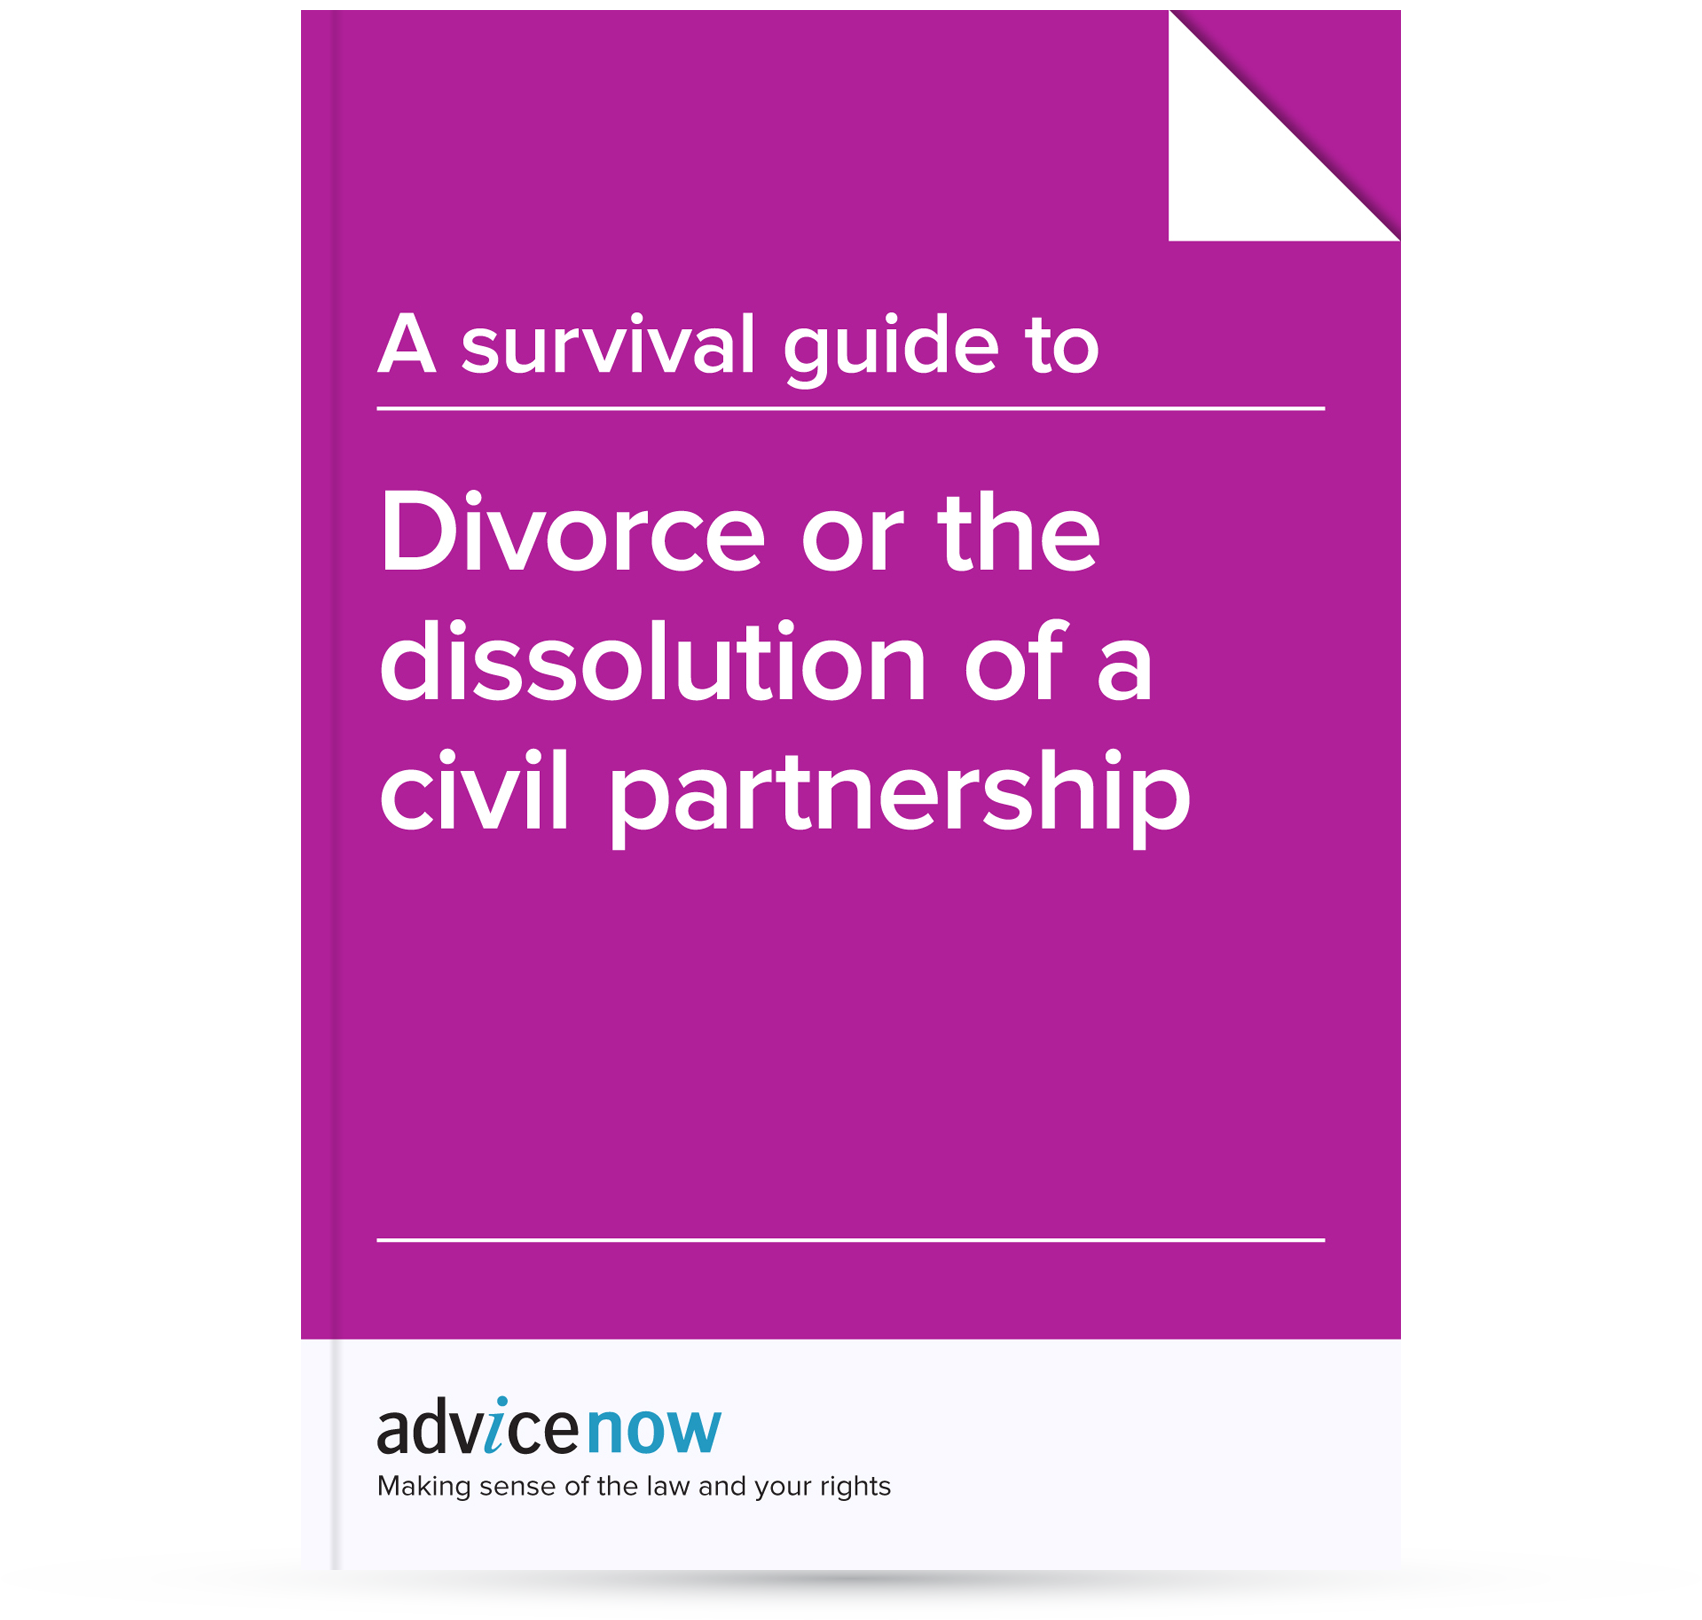 A survival guide to divorce or dissolution of a civil partnership a survival guide to divorce or dissolution of a civil partnership advicenow solutioingenieria Images